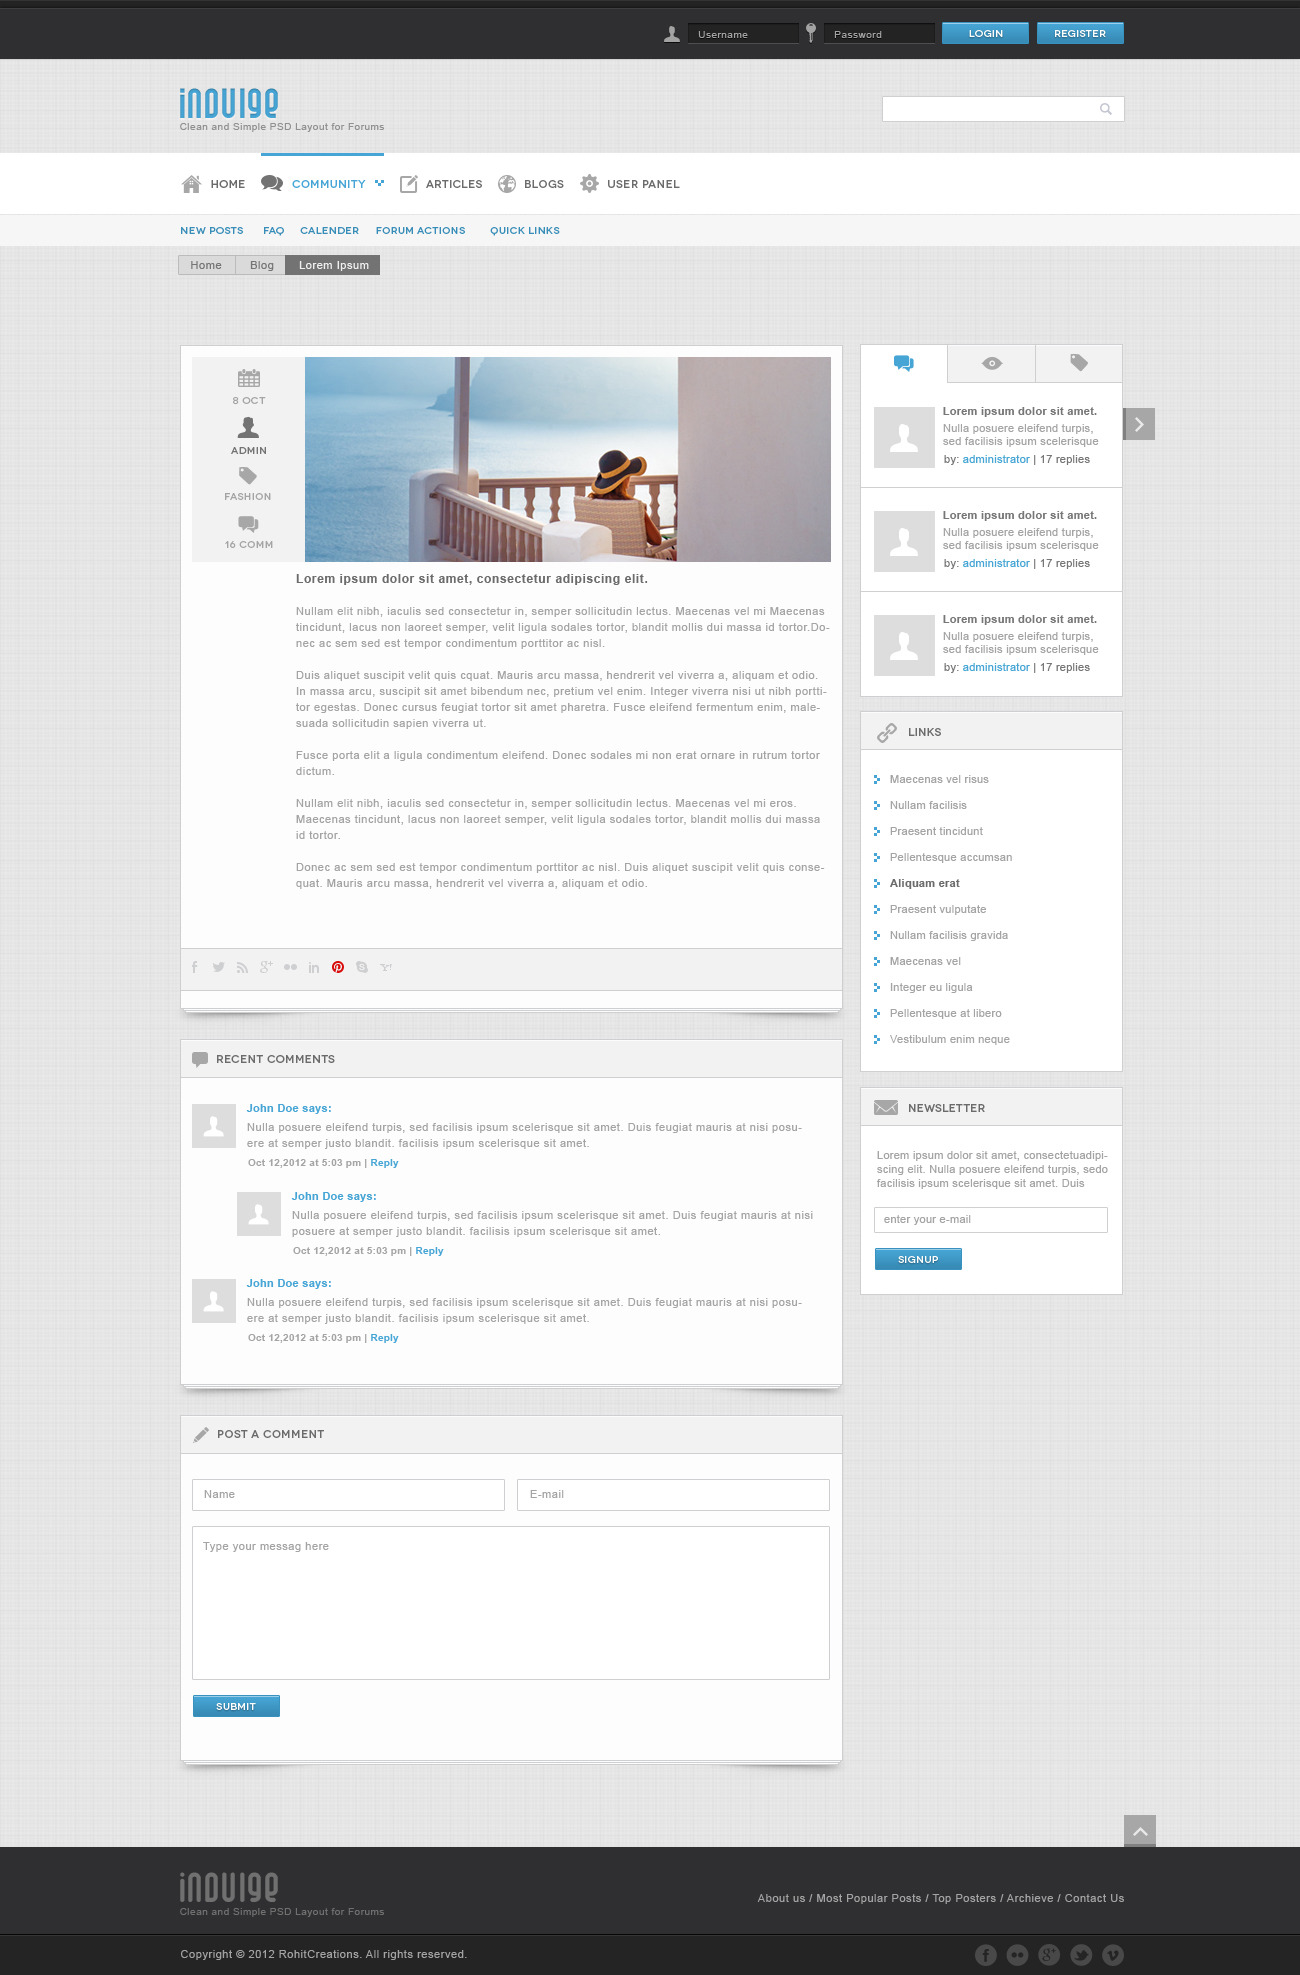 Indulge - Forum and blogs site template